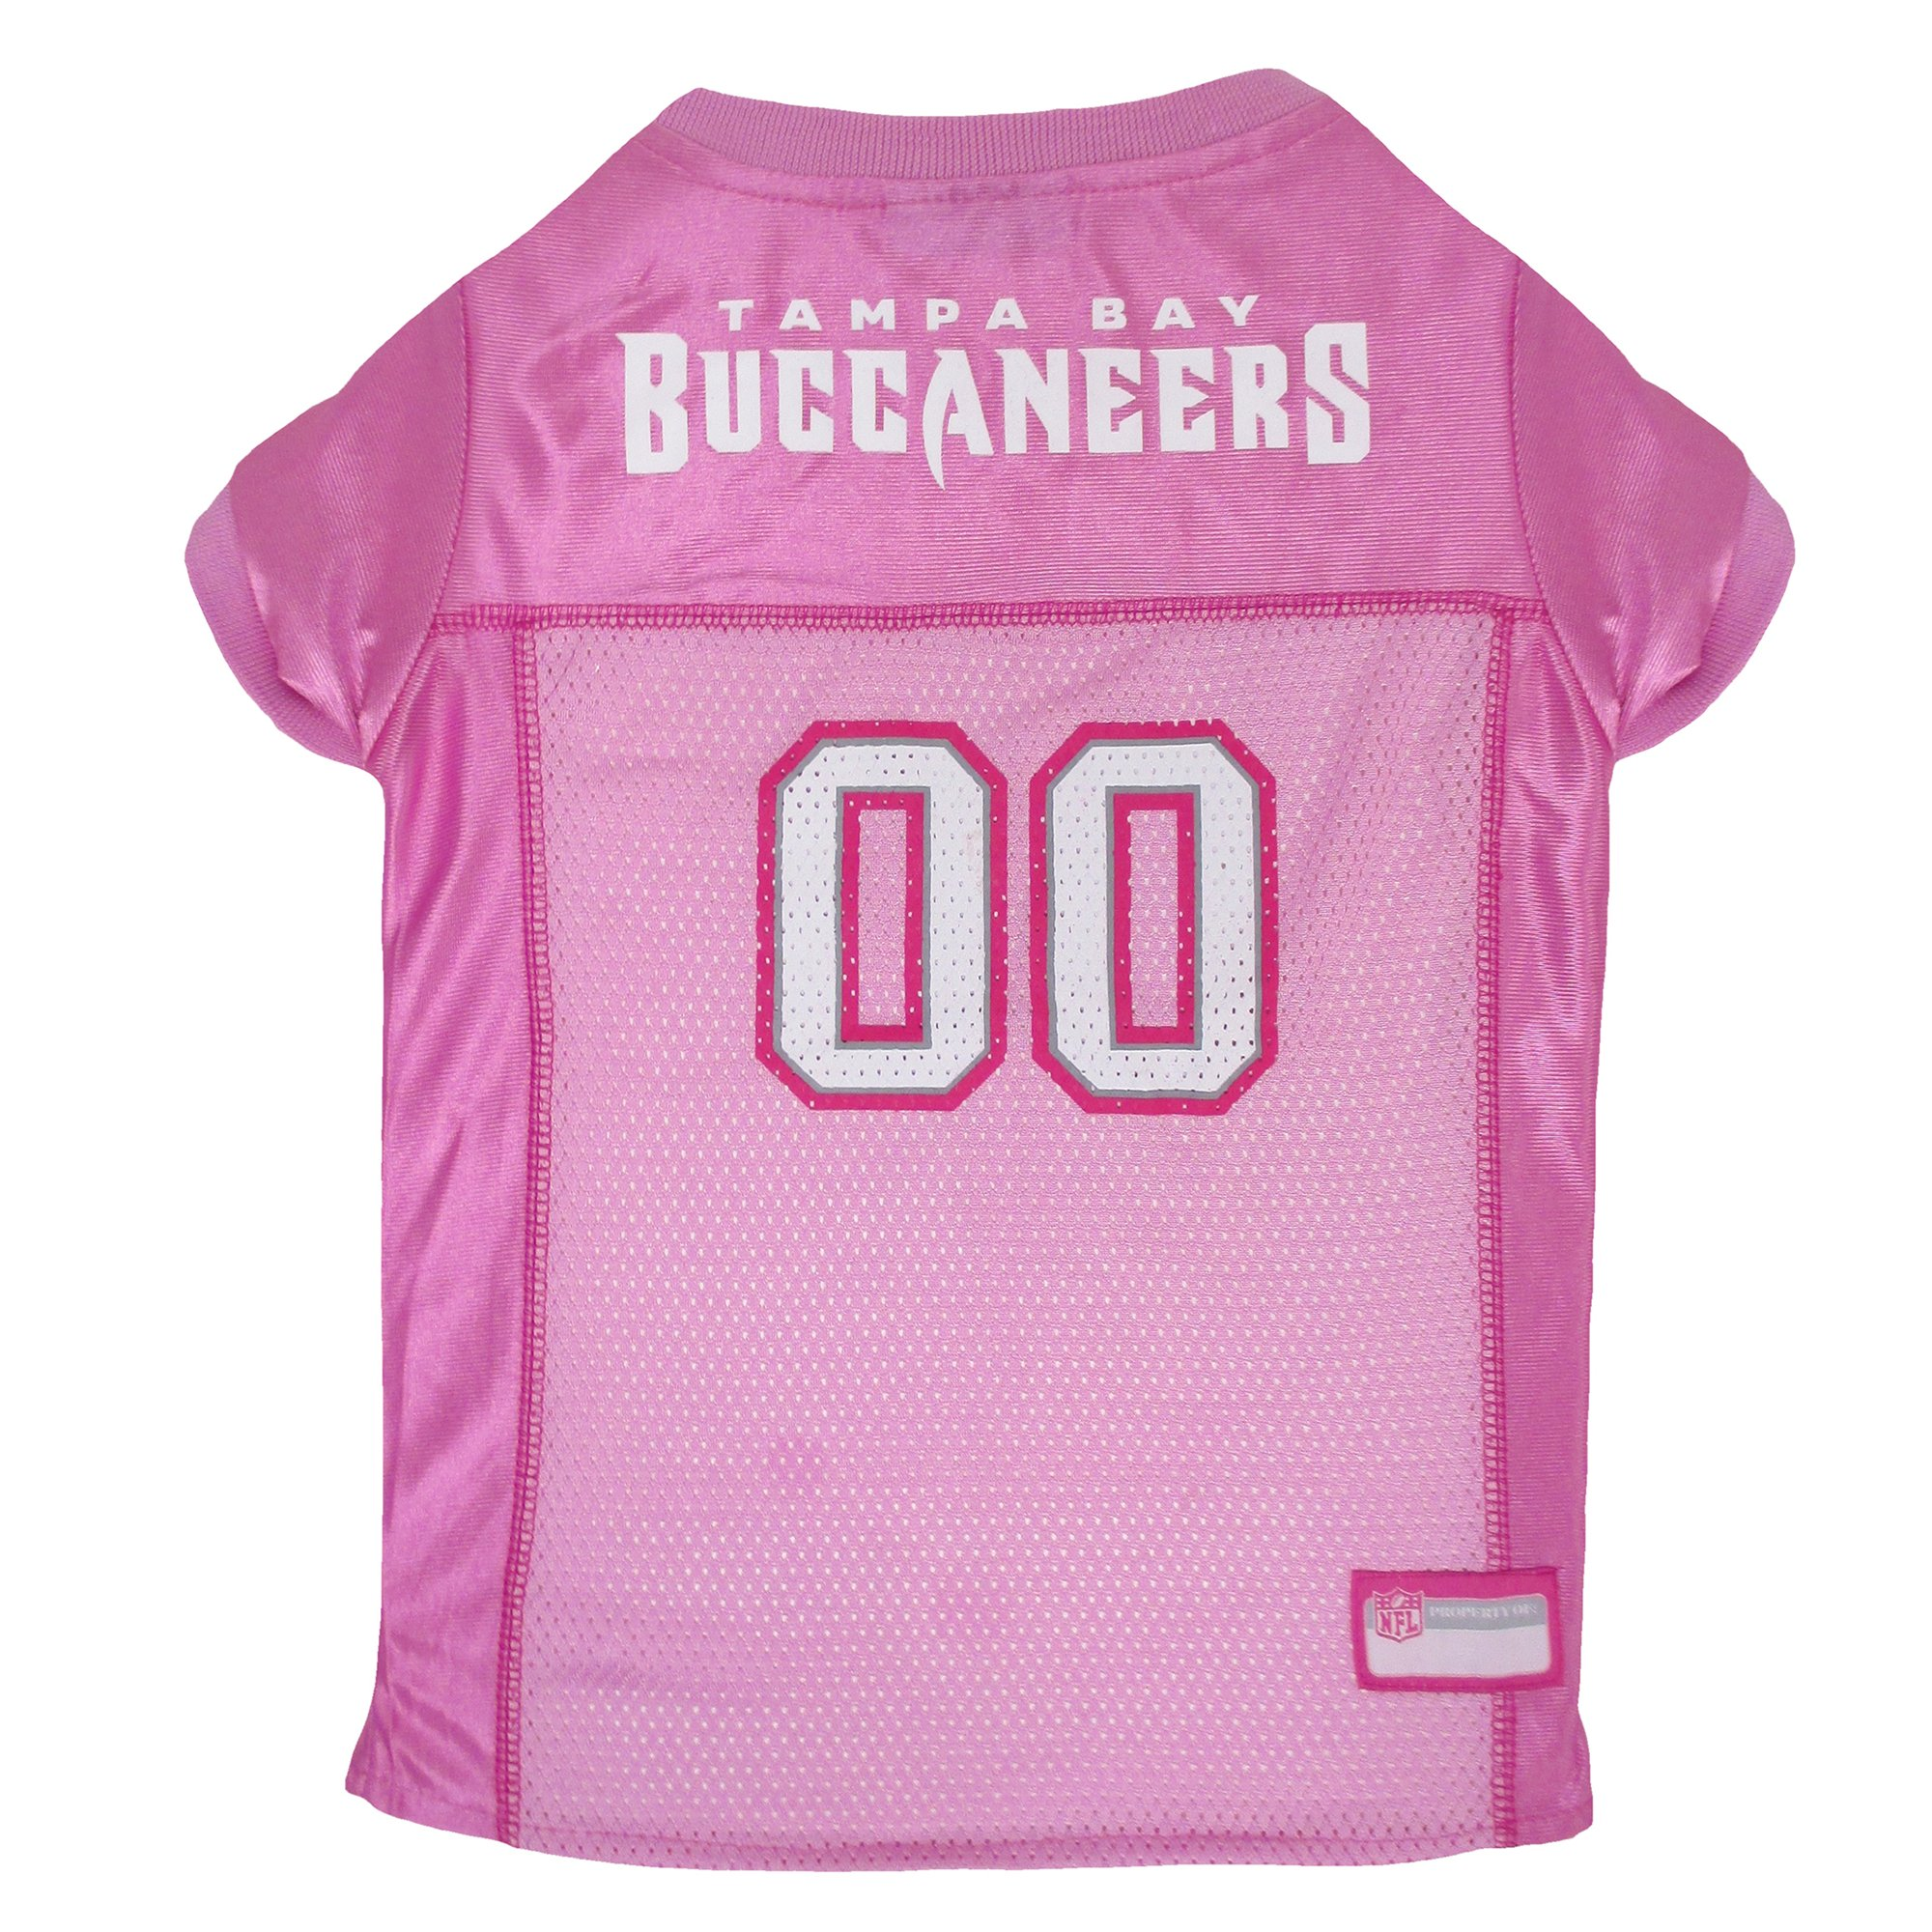 5f17b6fd Pets First Tampa Bay Buccaneers NFL Pink Mesh Jersey, Small | Petco